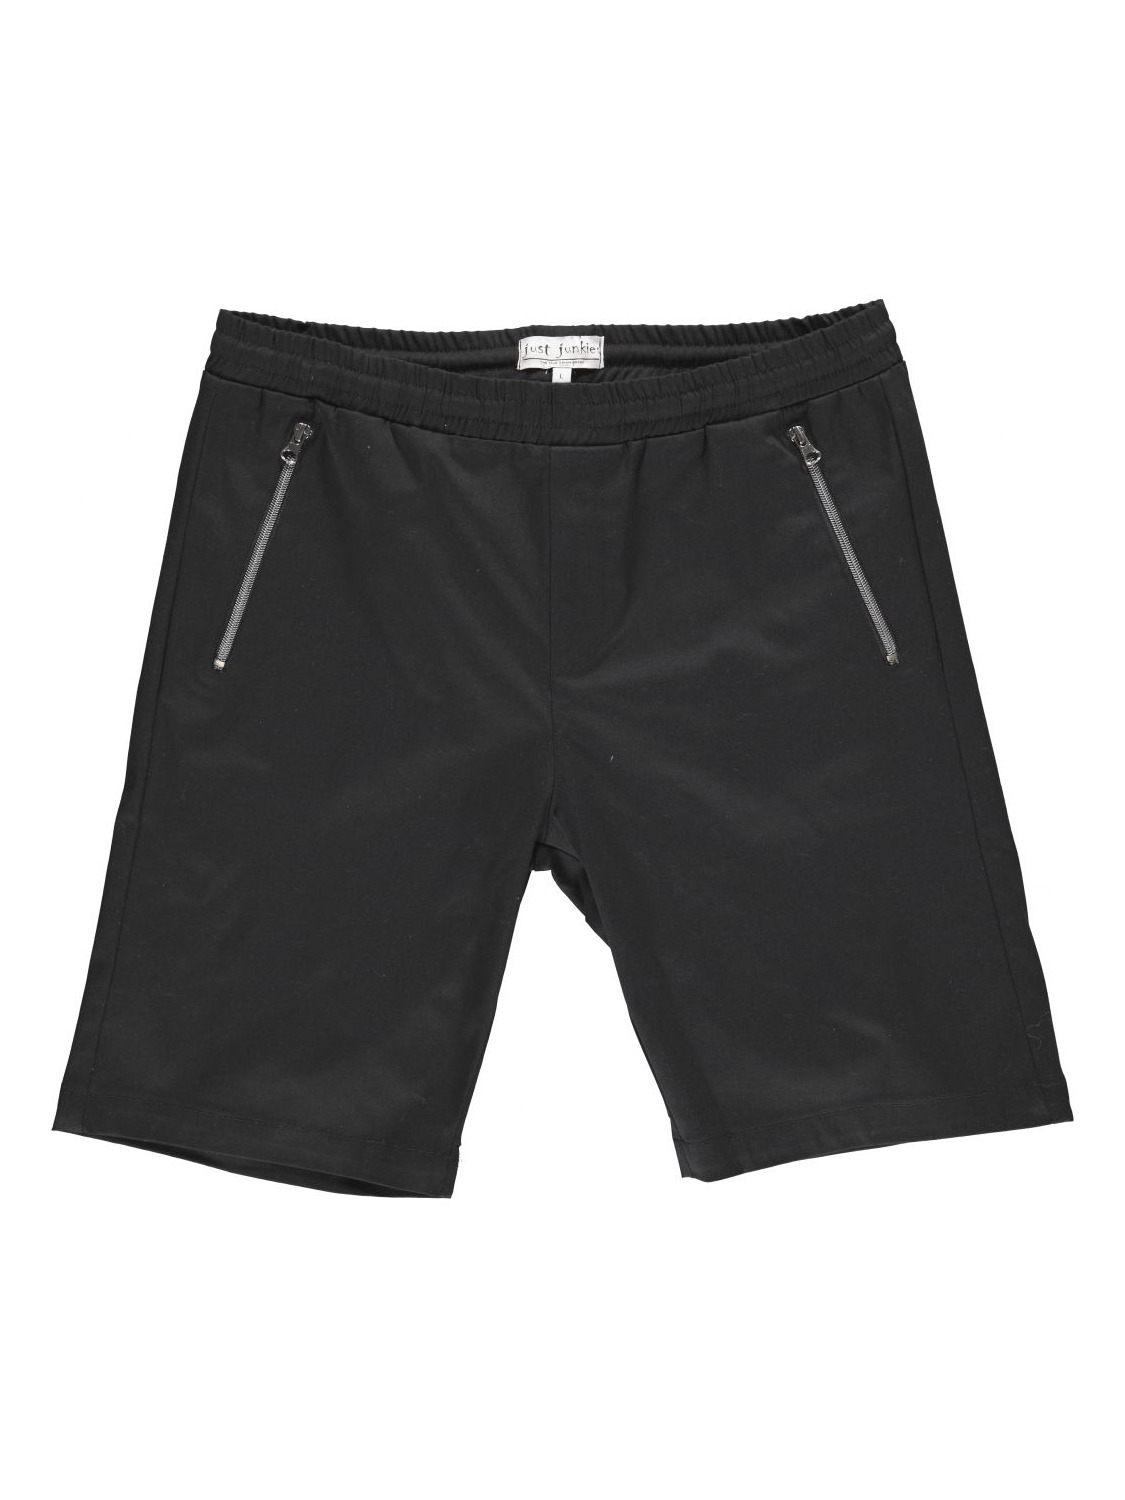 Just Junkies Flex 2.0 Shorts Black | GATE36 Hobro